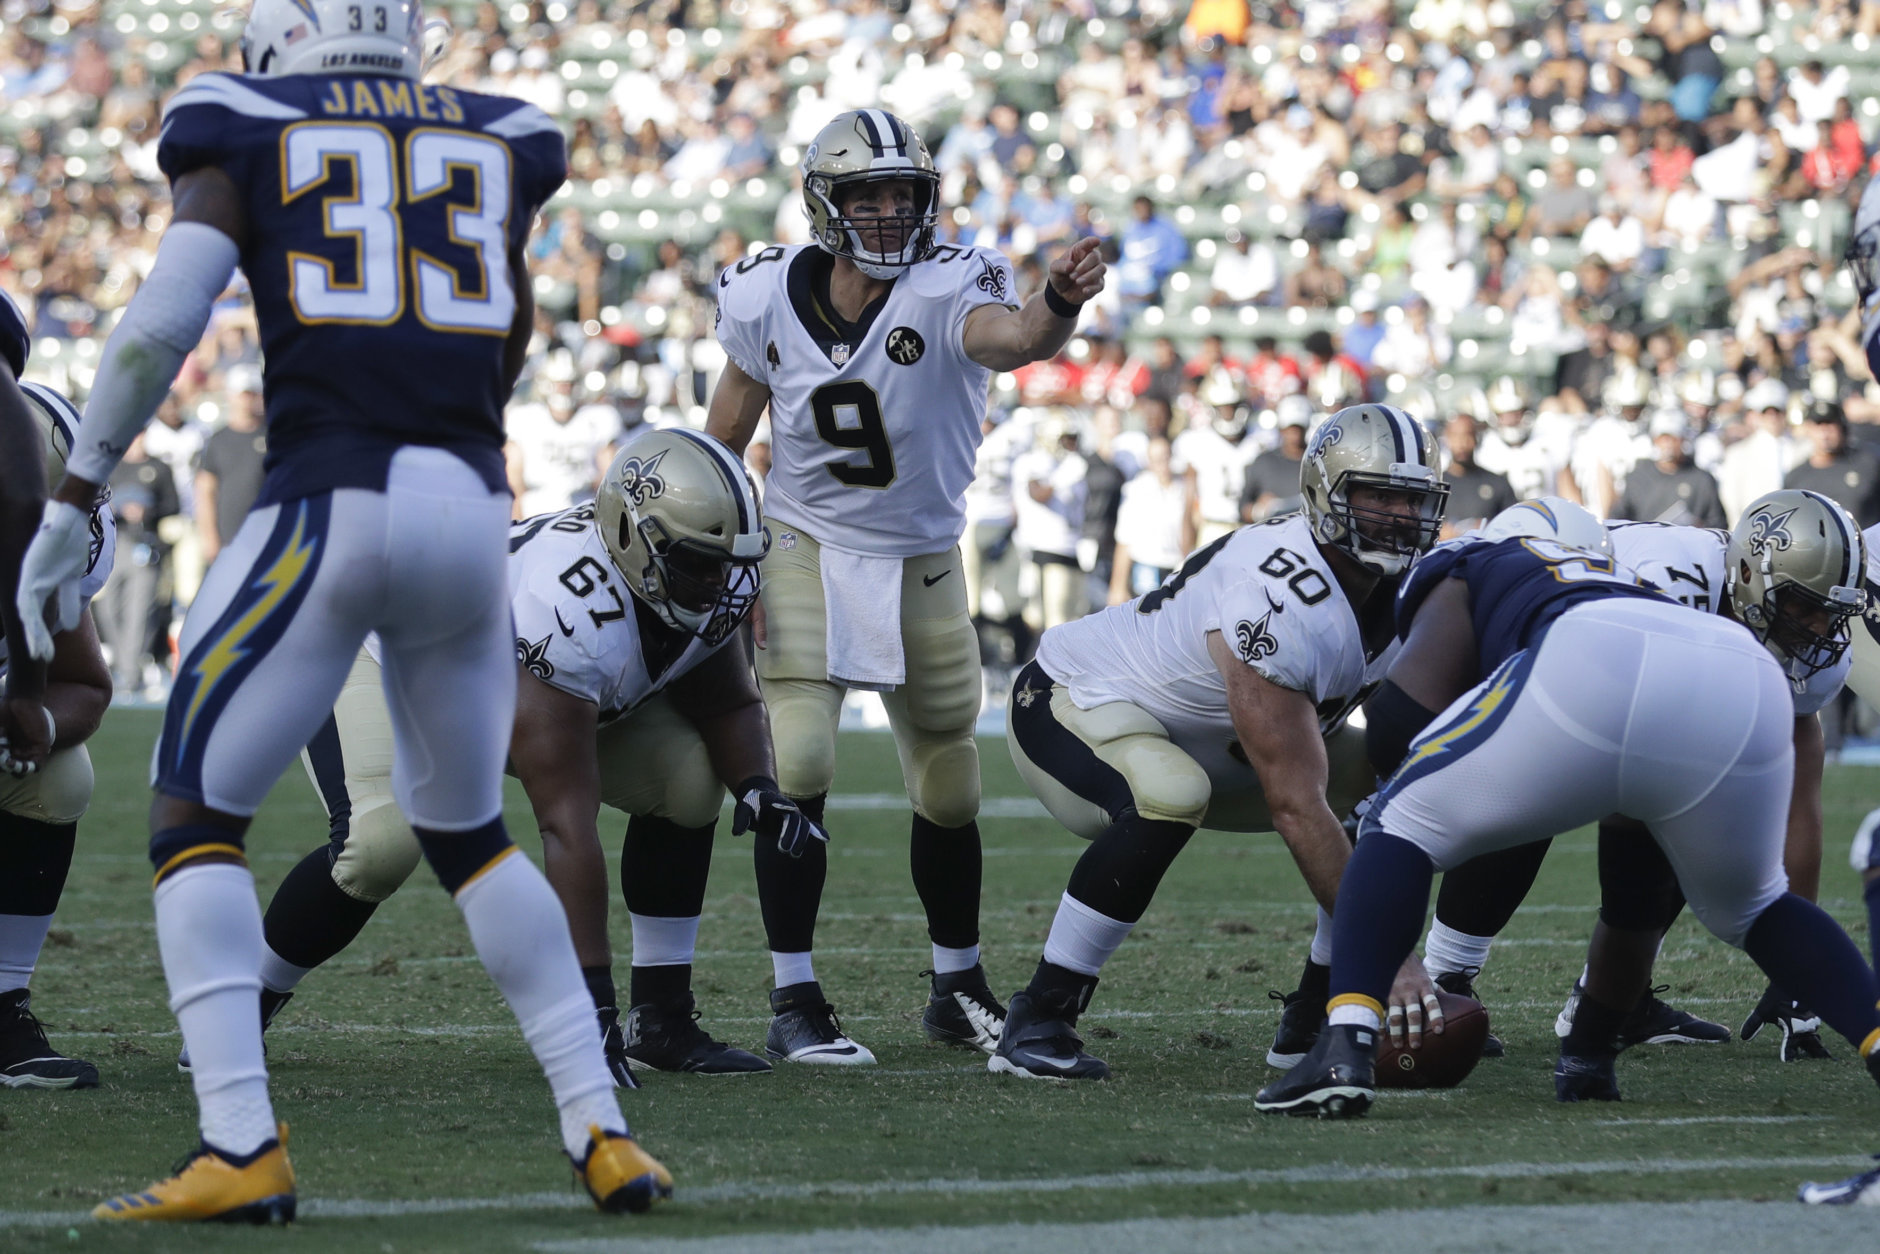 New Orleans Saints quarterback Drew Brees motions before a play during the first half of an NFL preseason football game against the Los Angeles Chargers Saturday, Aug. 25, 2018, in Carson, Calif. (AP Photo/Marcio Jose Sanchez)